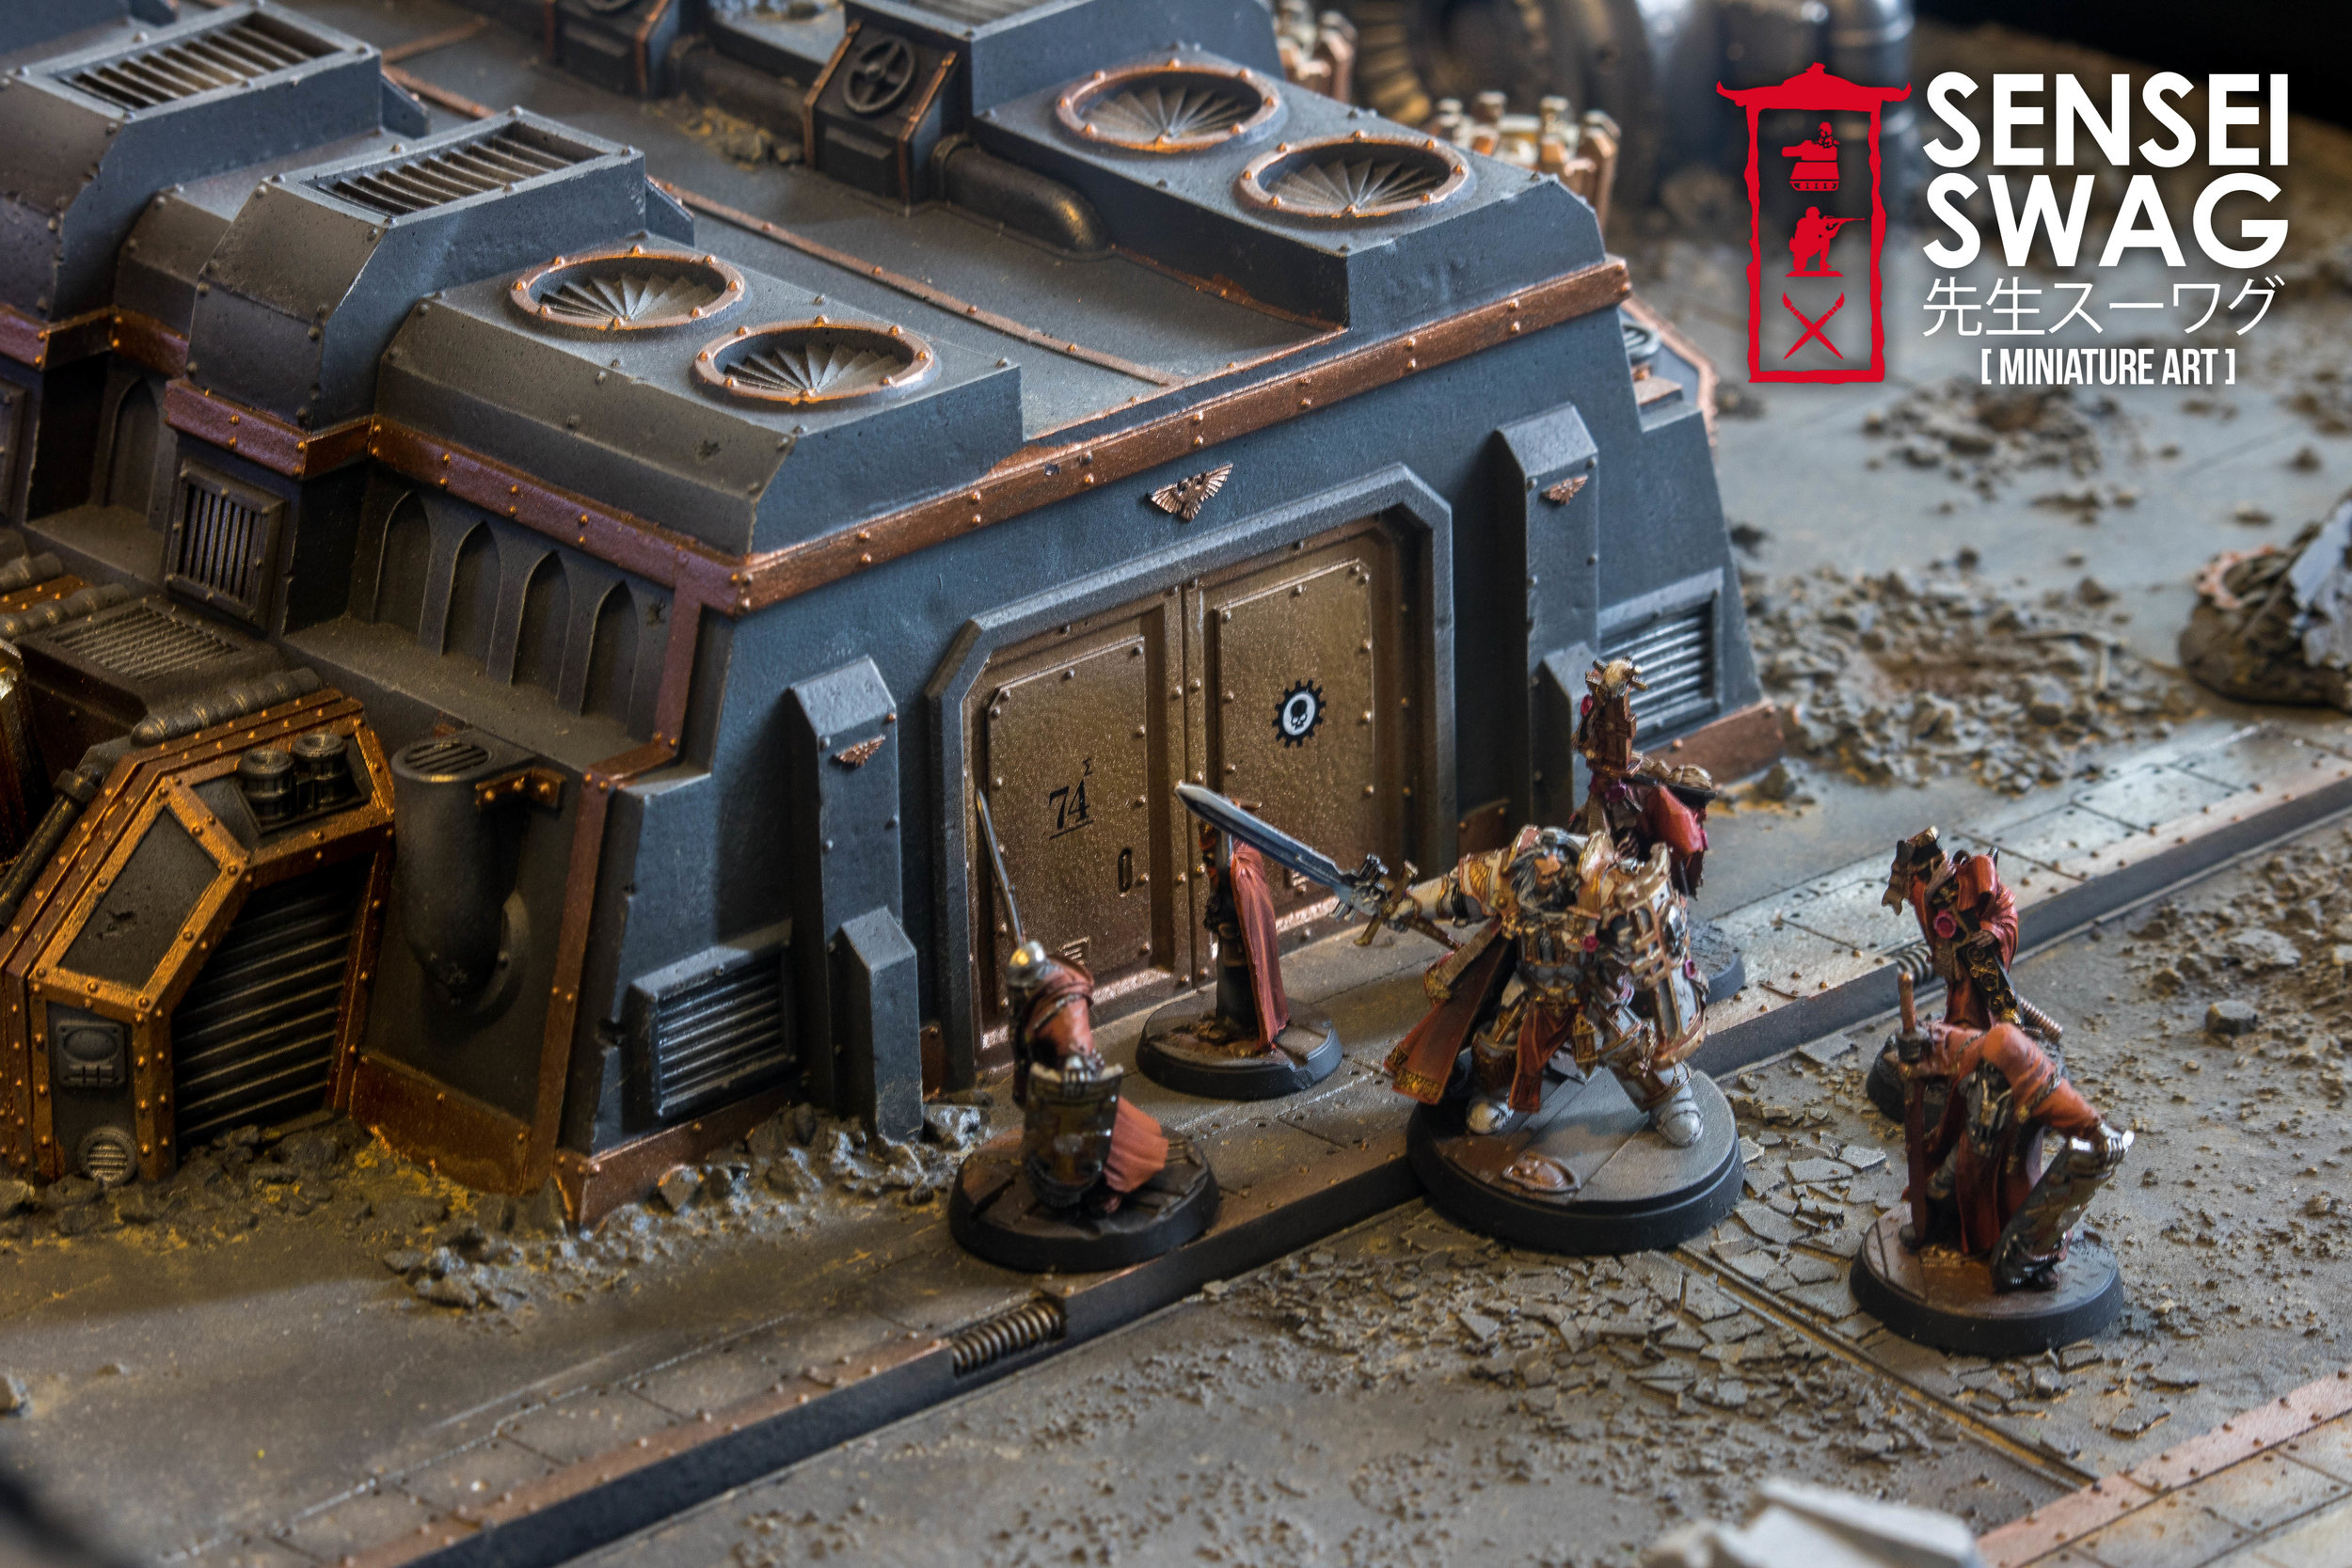 Warhammer 40k Cityfight Apocalypse Industrial Imperial Sector Forgeworld Gametable-13.jpg